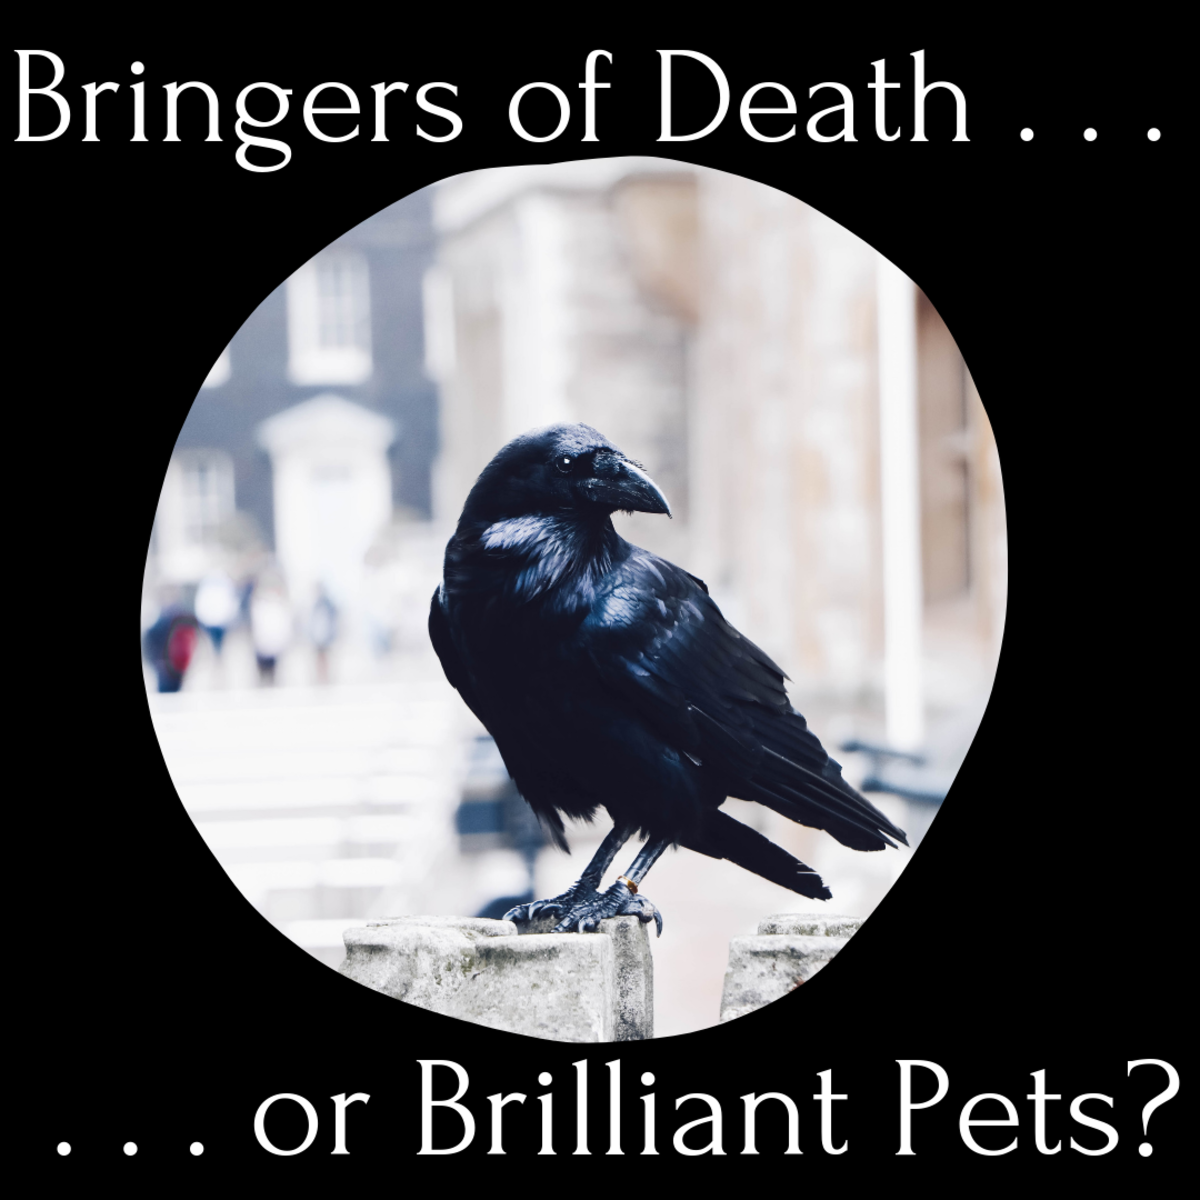 There are as many superstitions about crows as there are about black cats—if not more—but are they justified? Here's what I learned when I brought a crow home.